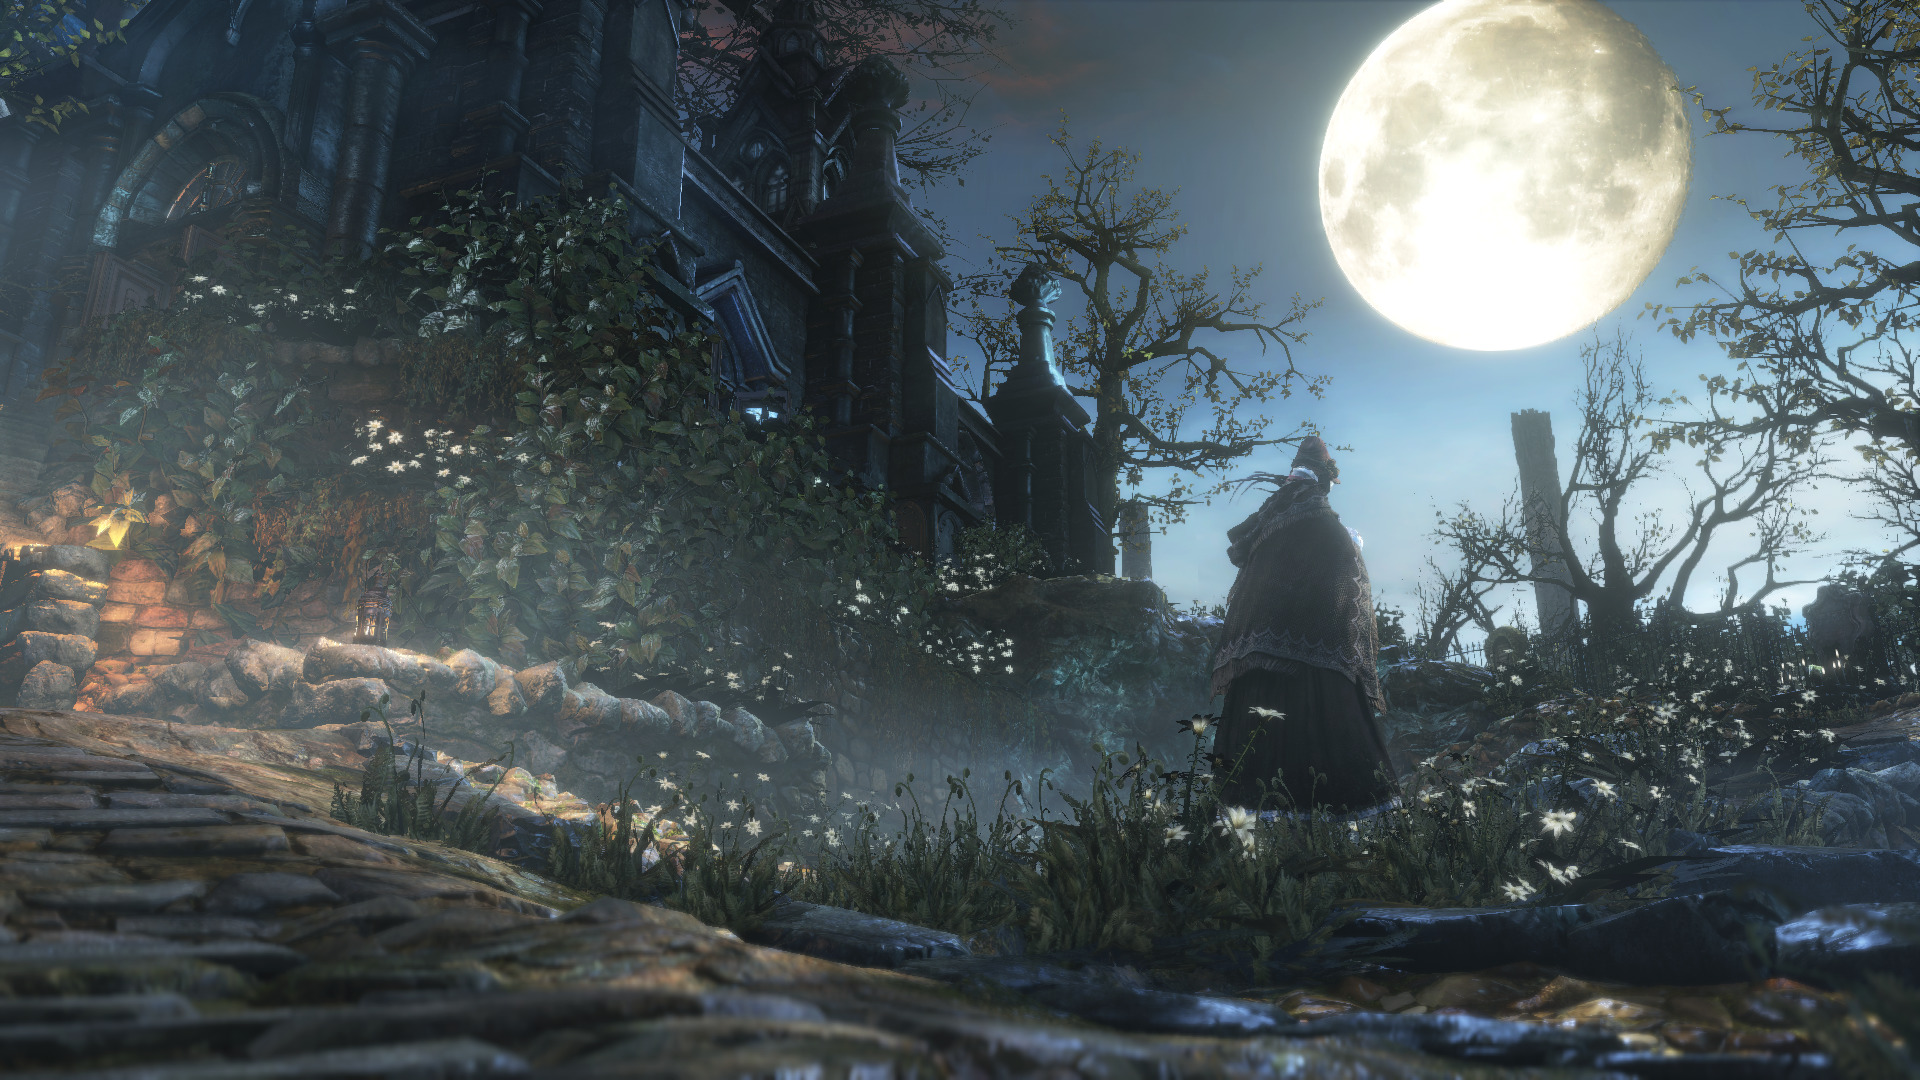 Hd Wallpaper For Mobile 1920x1080 Cars Bloodborne Video Games Wallpapers Hd Desktop And Mobile